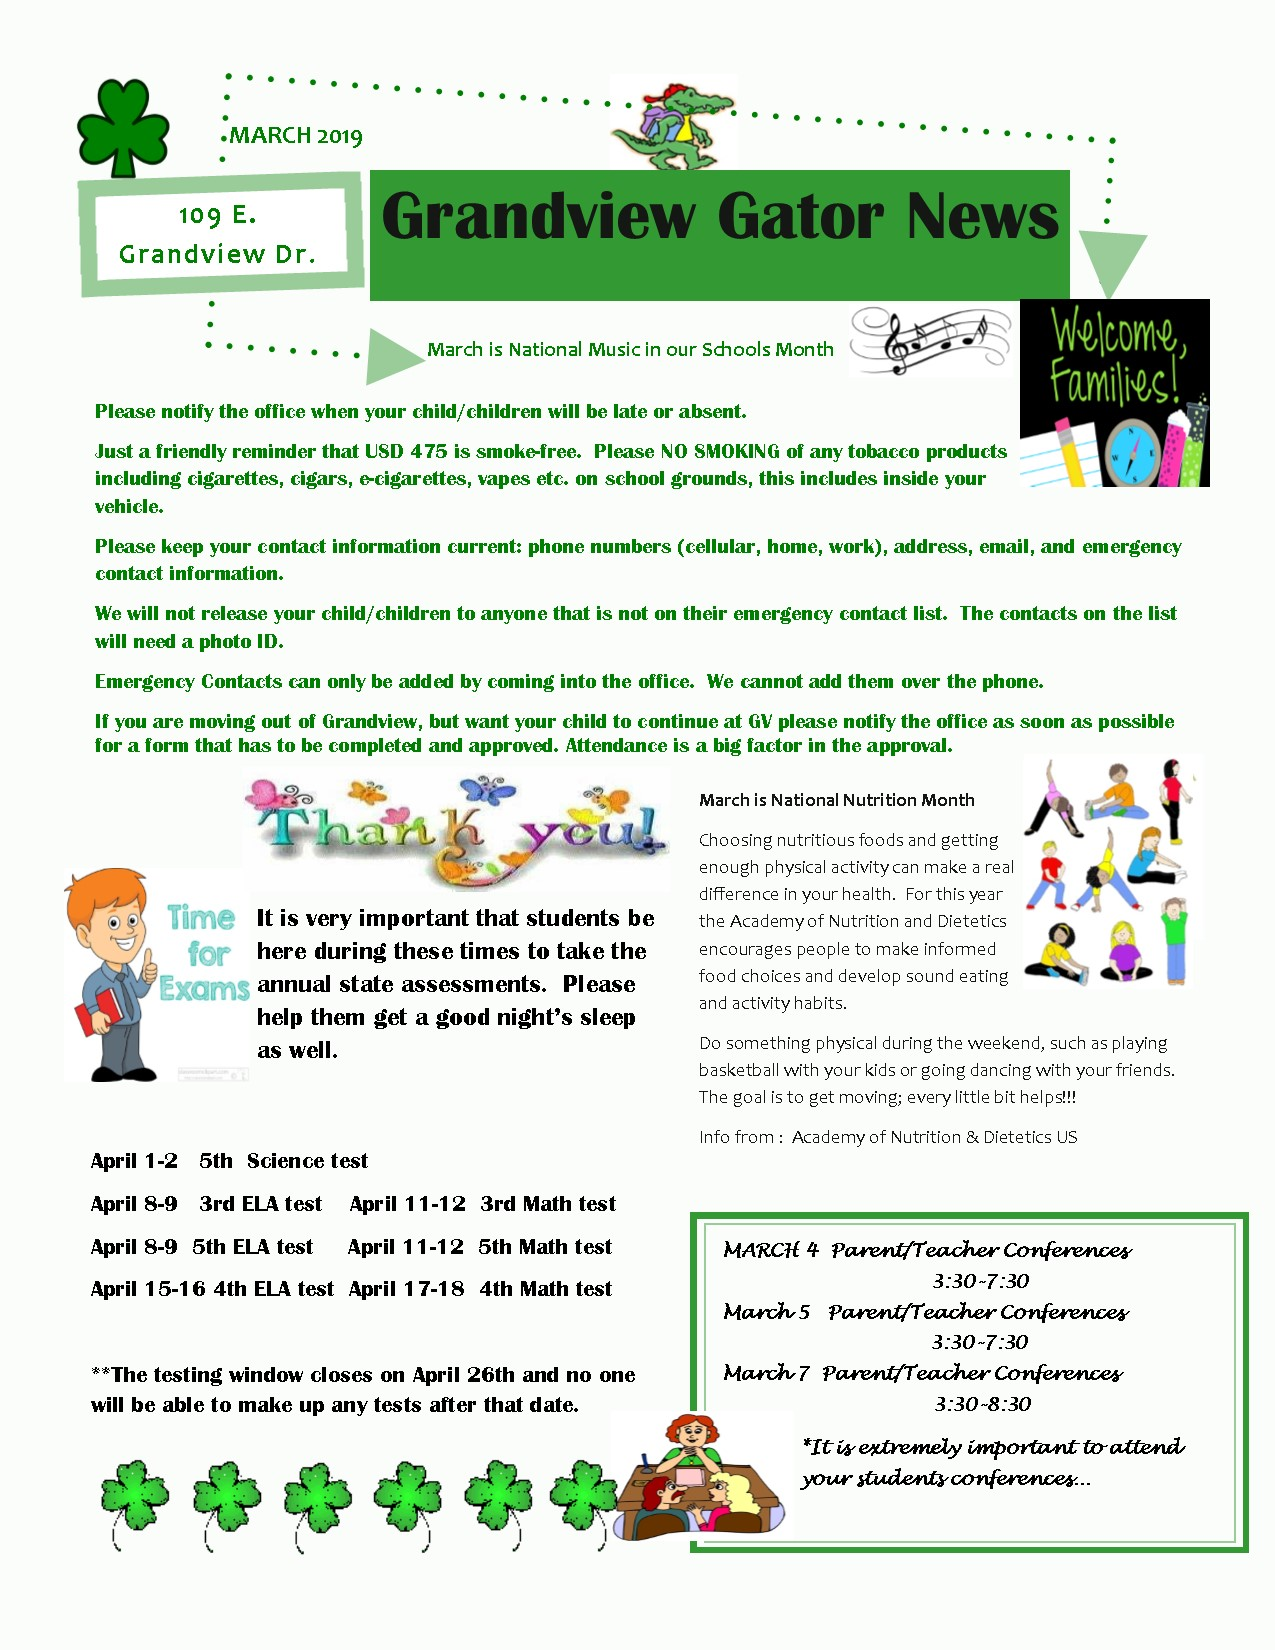 March Newsletter information below